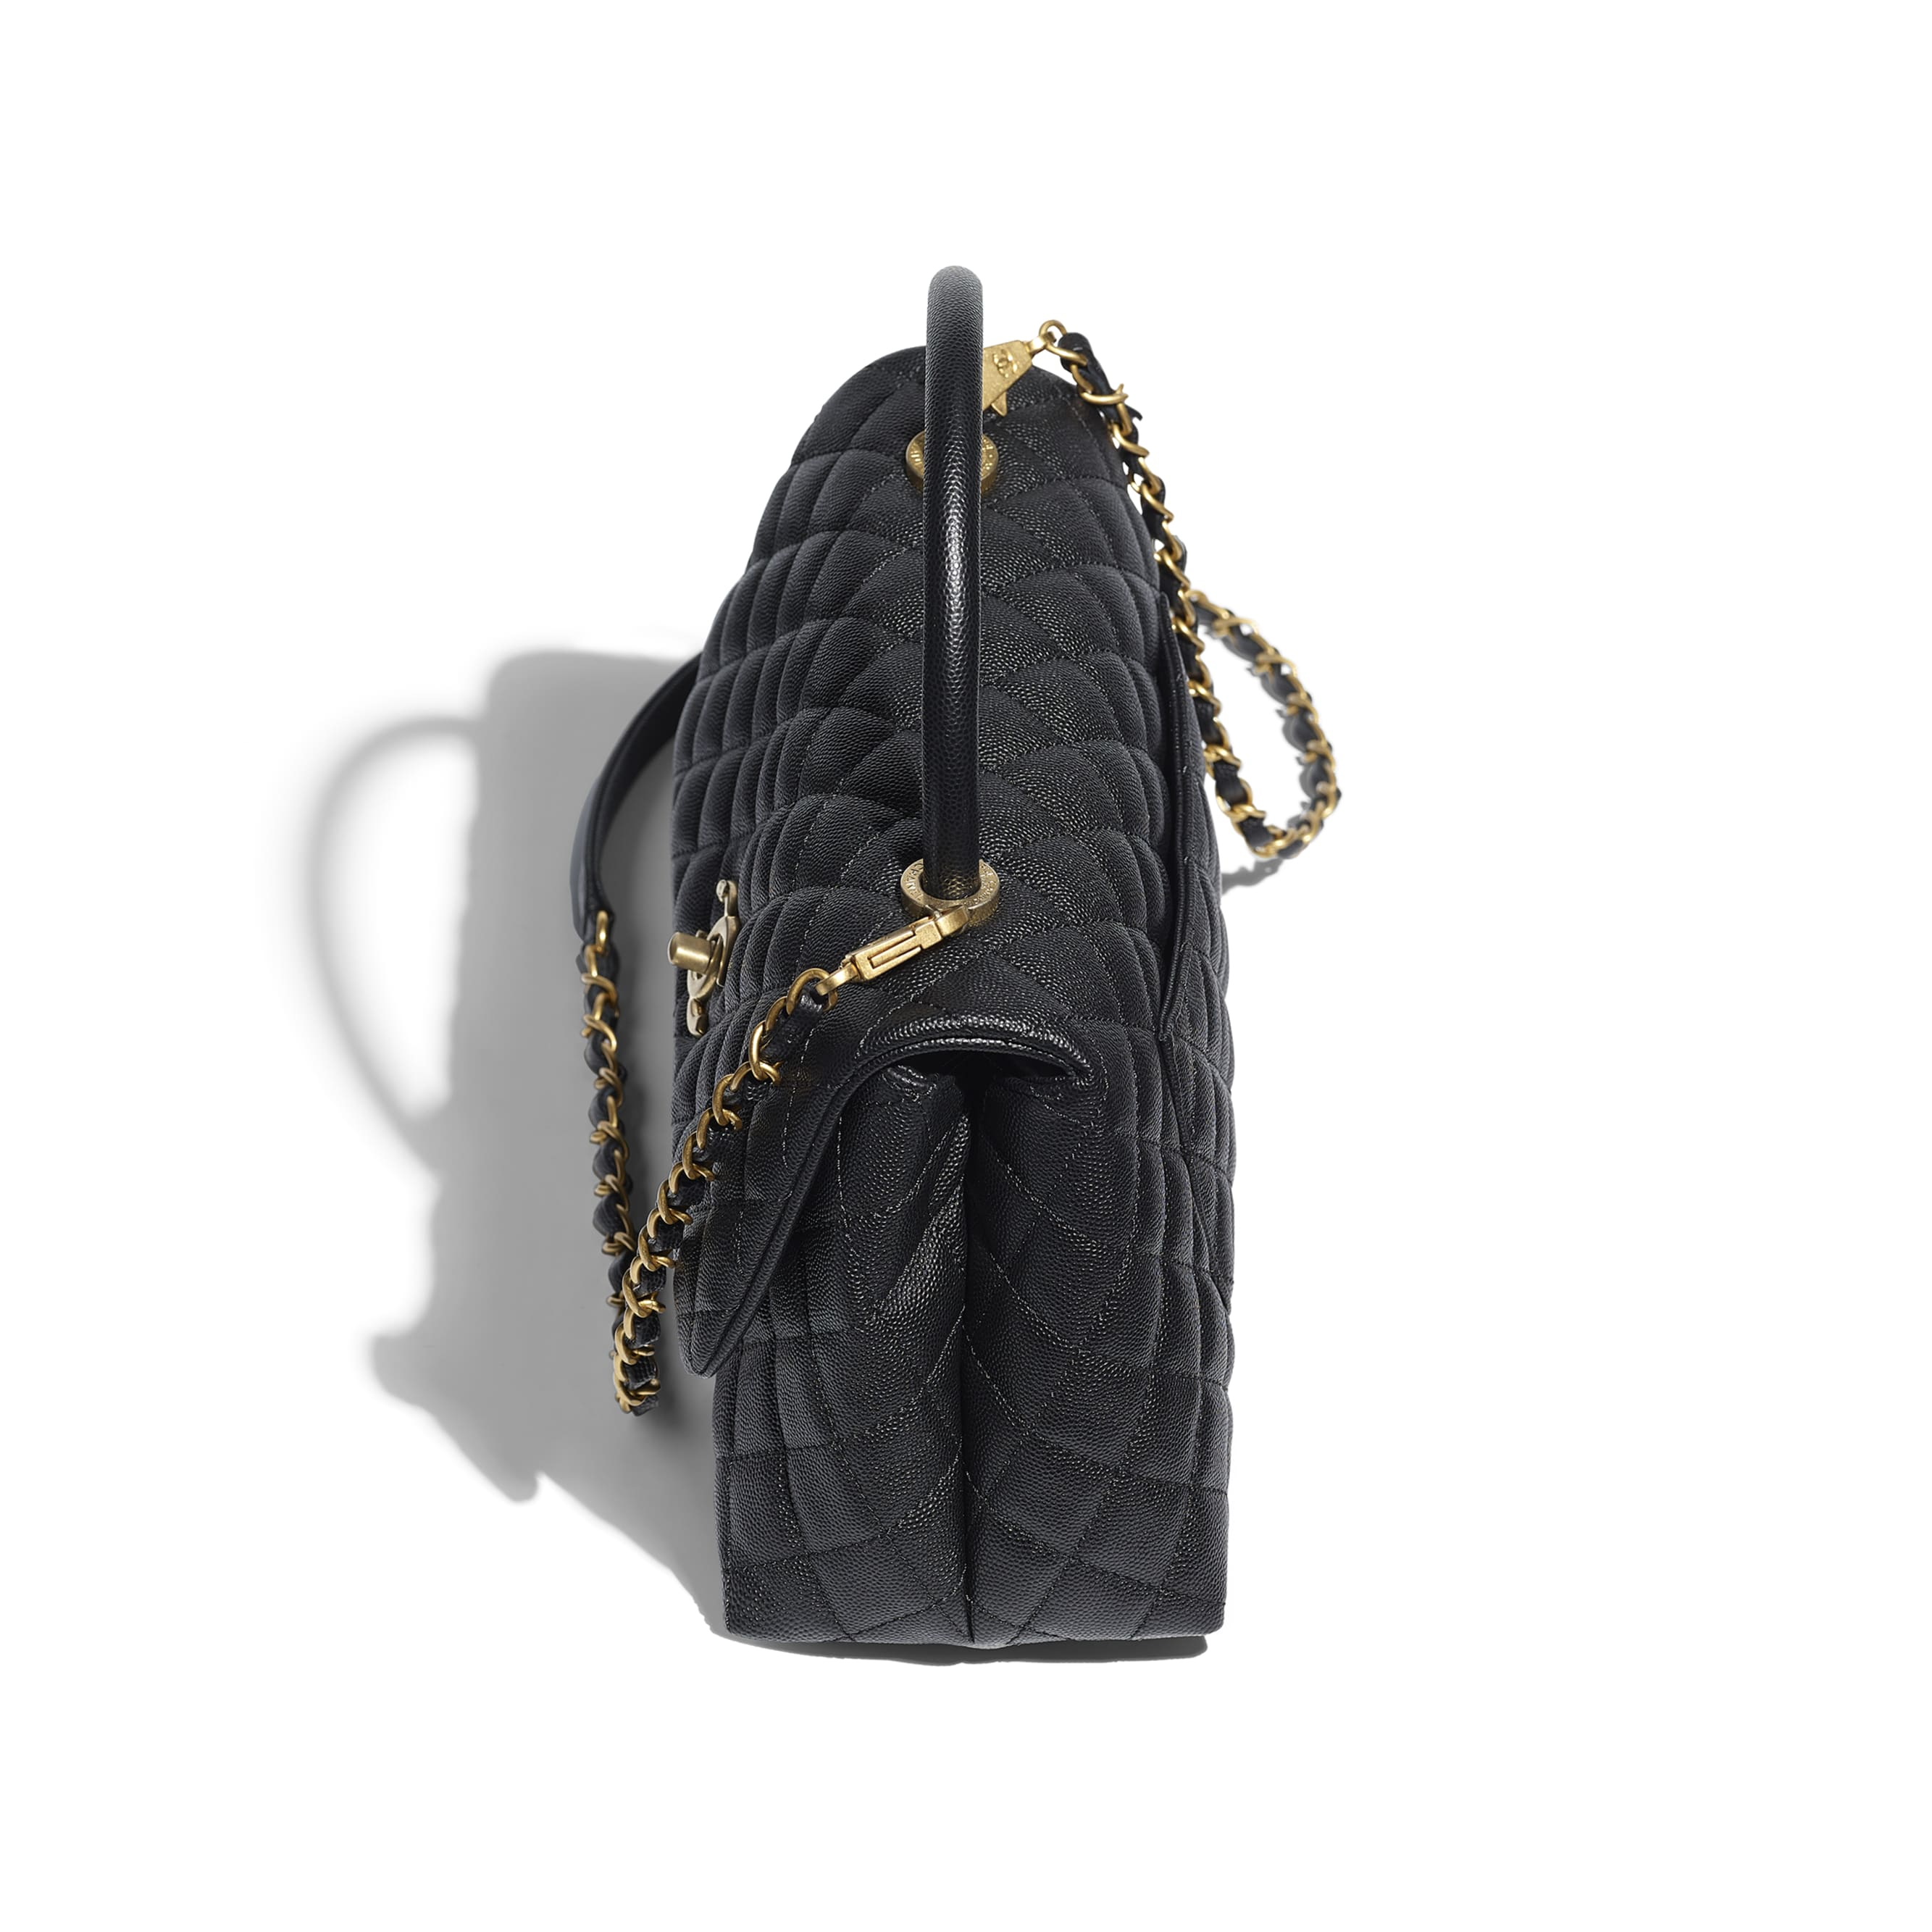 Flap Bag With Top Handle - Black - Grained Calfskin & Gold-Tone Metal - CHANEL - Other view - see standard sized version